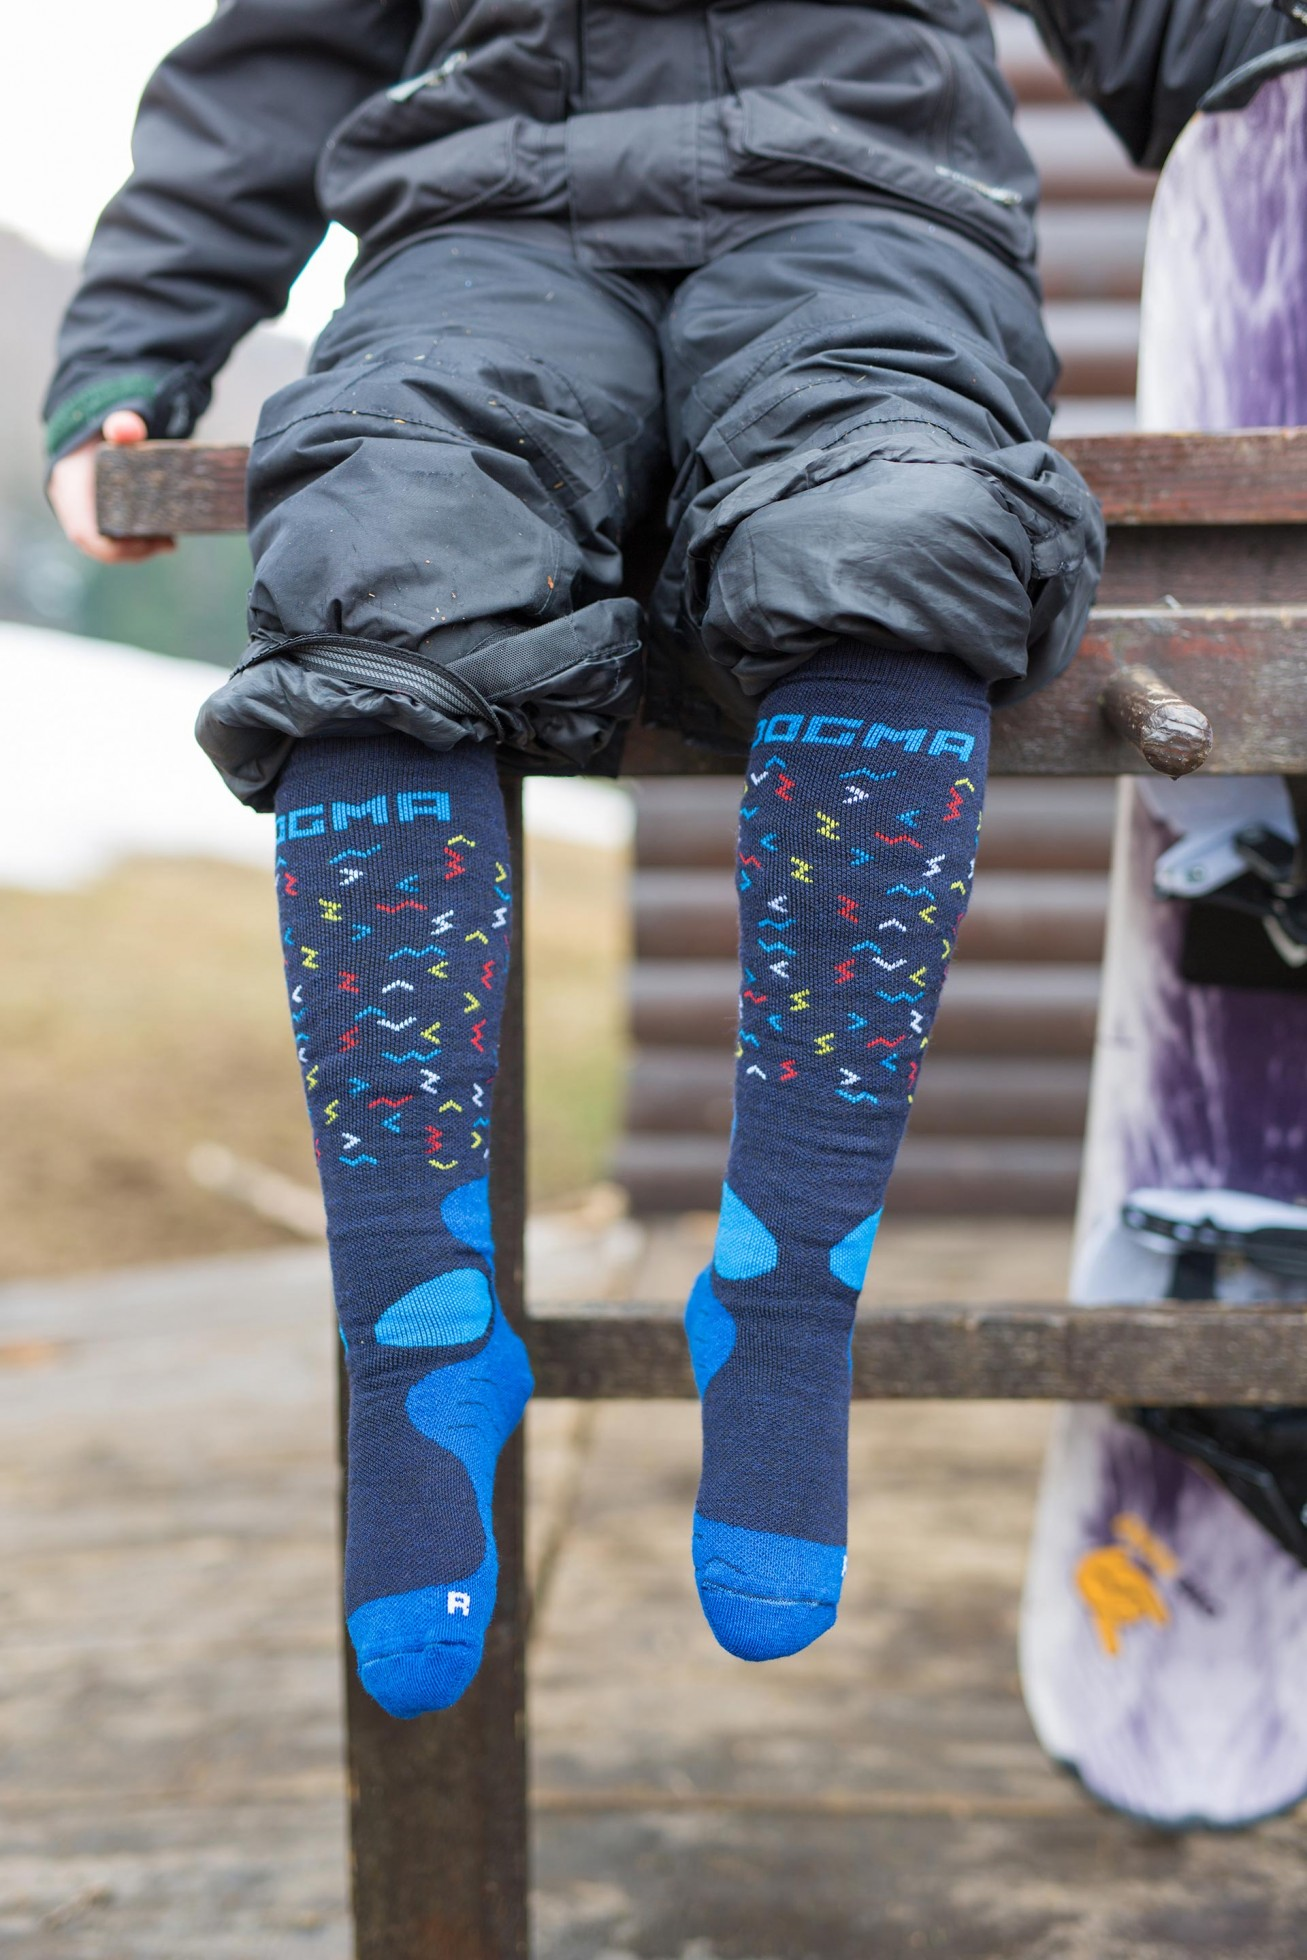 Snow Fox Junior Worms Blue Dogma Socks Extreme Design For Your